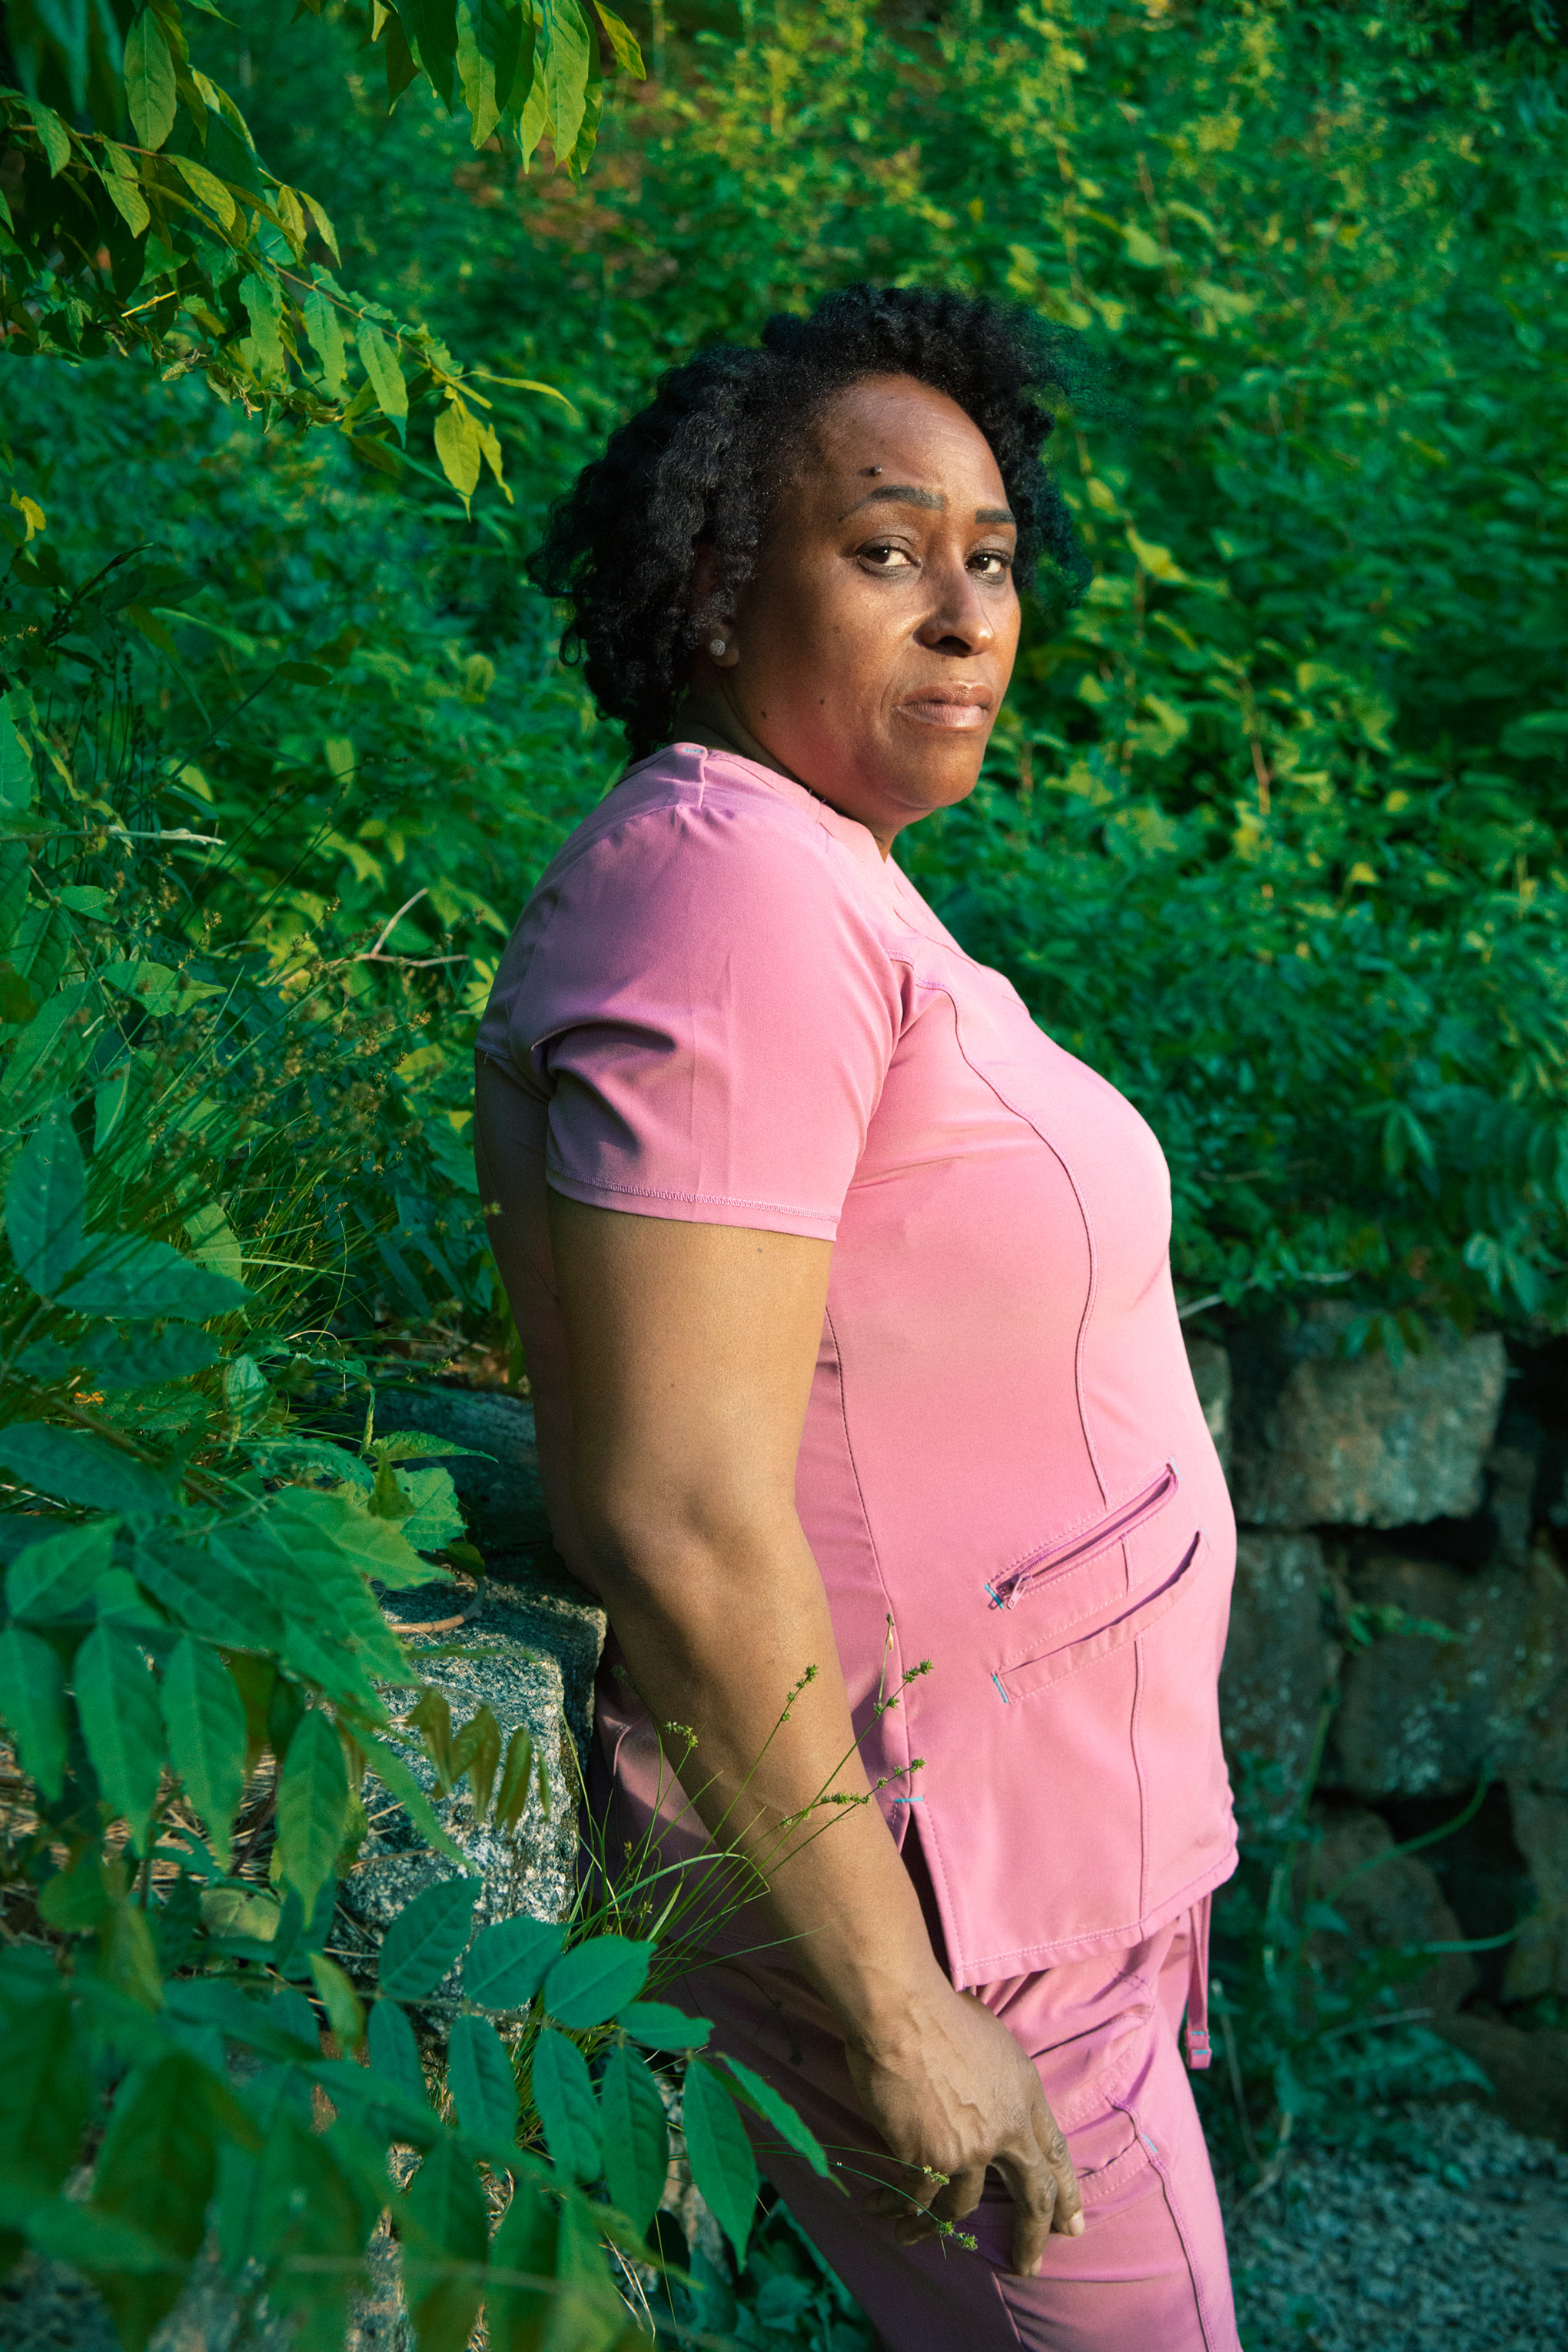 Tanya Beckford near her home in Manchester, Conn., on May 27.